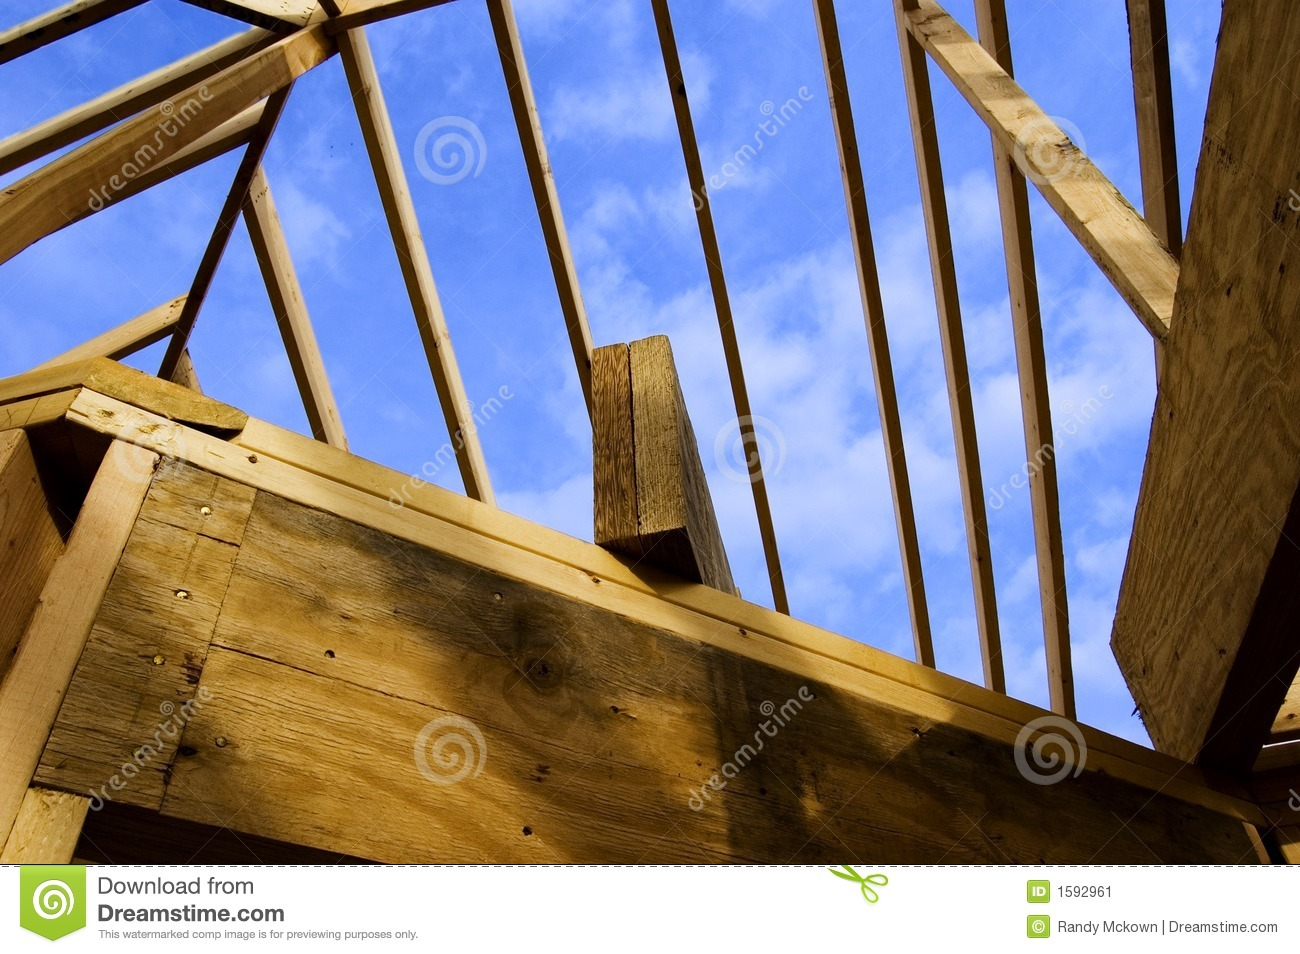 Wood Stud Roof Frame of Home Construction